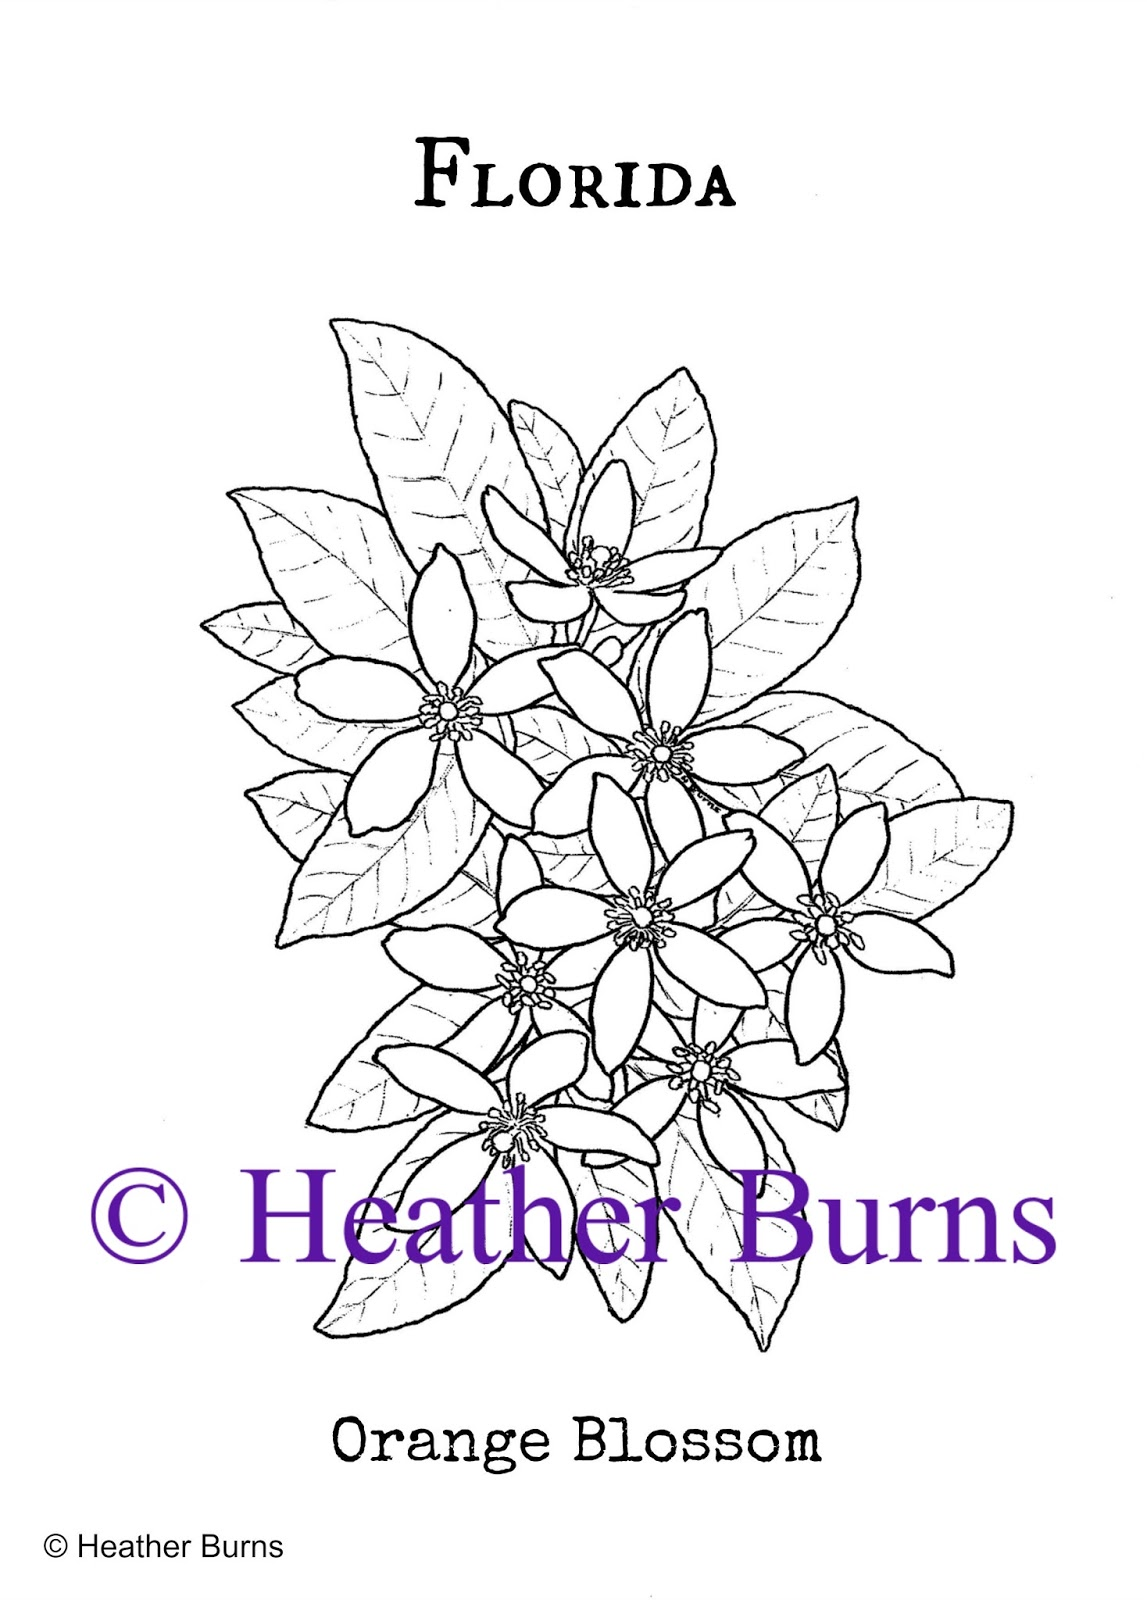 Orange blossom flower coloring page coloring page state flower coloring book november 2017 buycottarizona